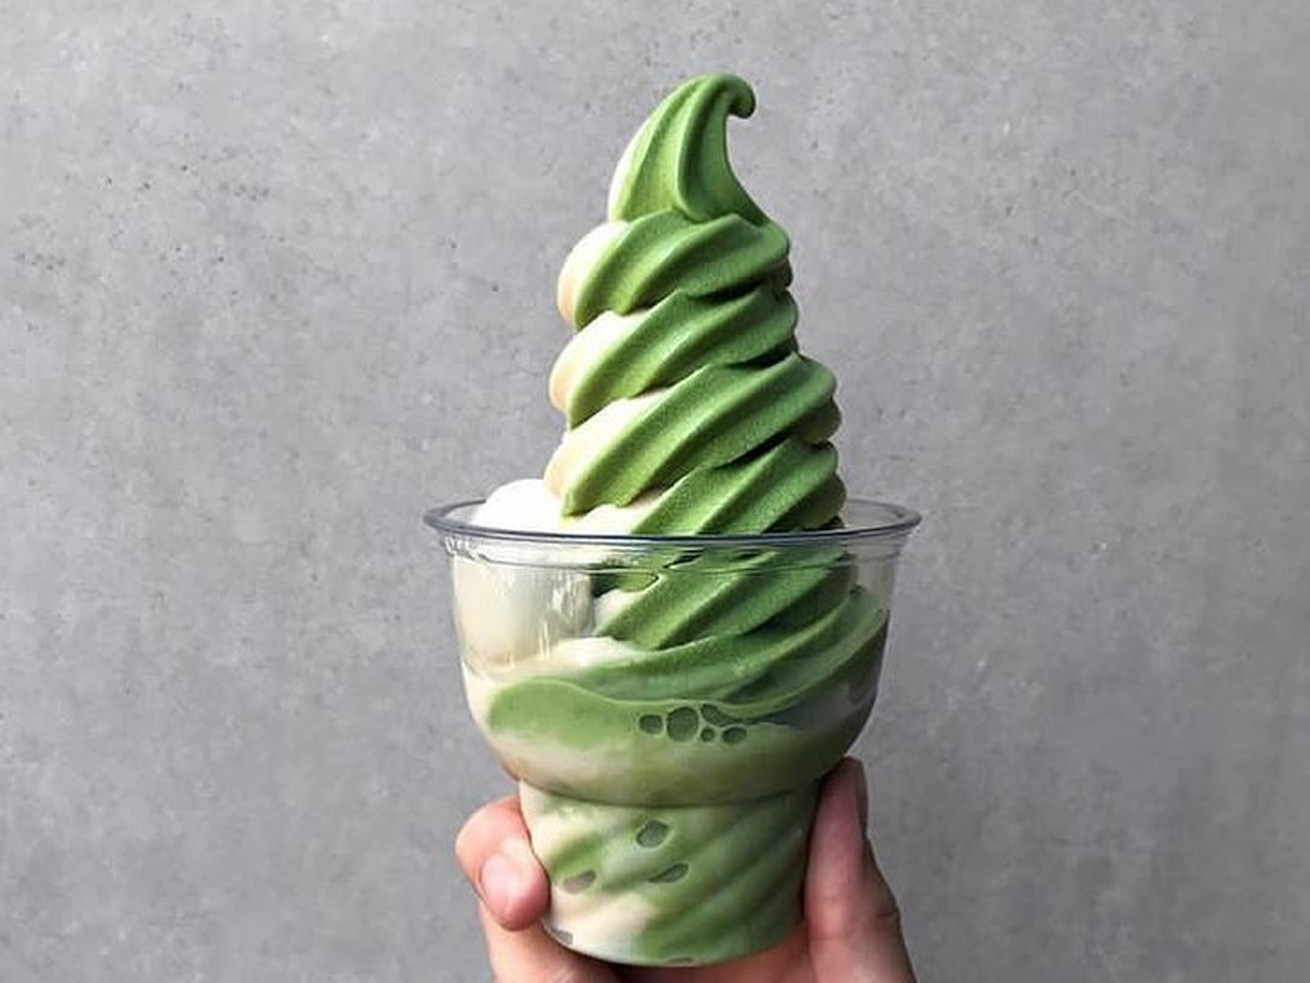 Matcha soft-serve ice cream is coming to Wicker Park.